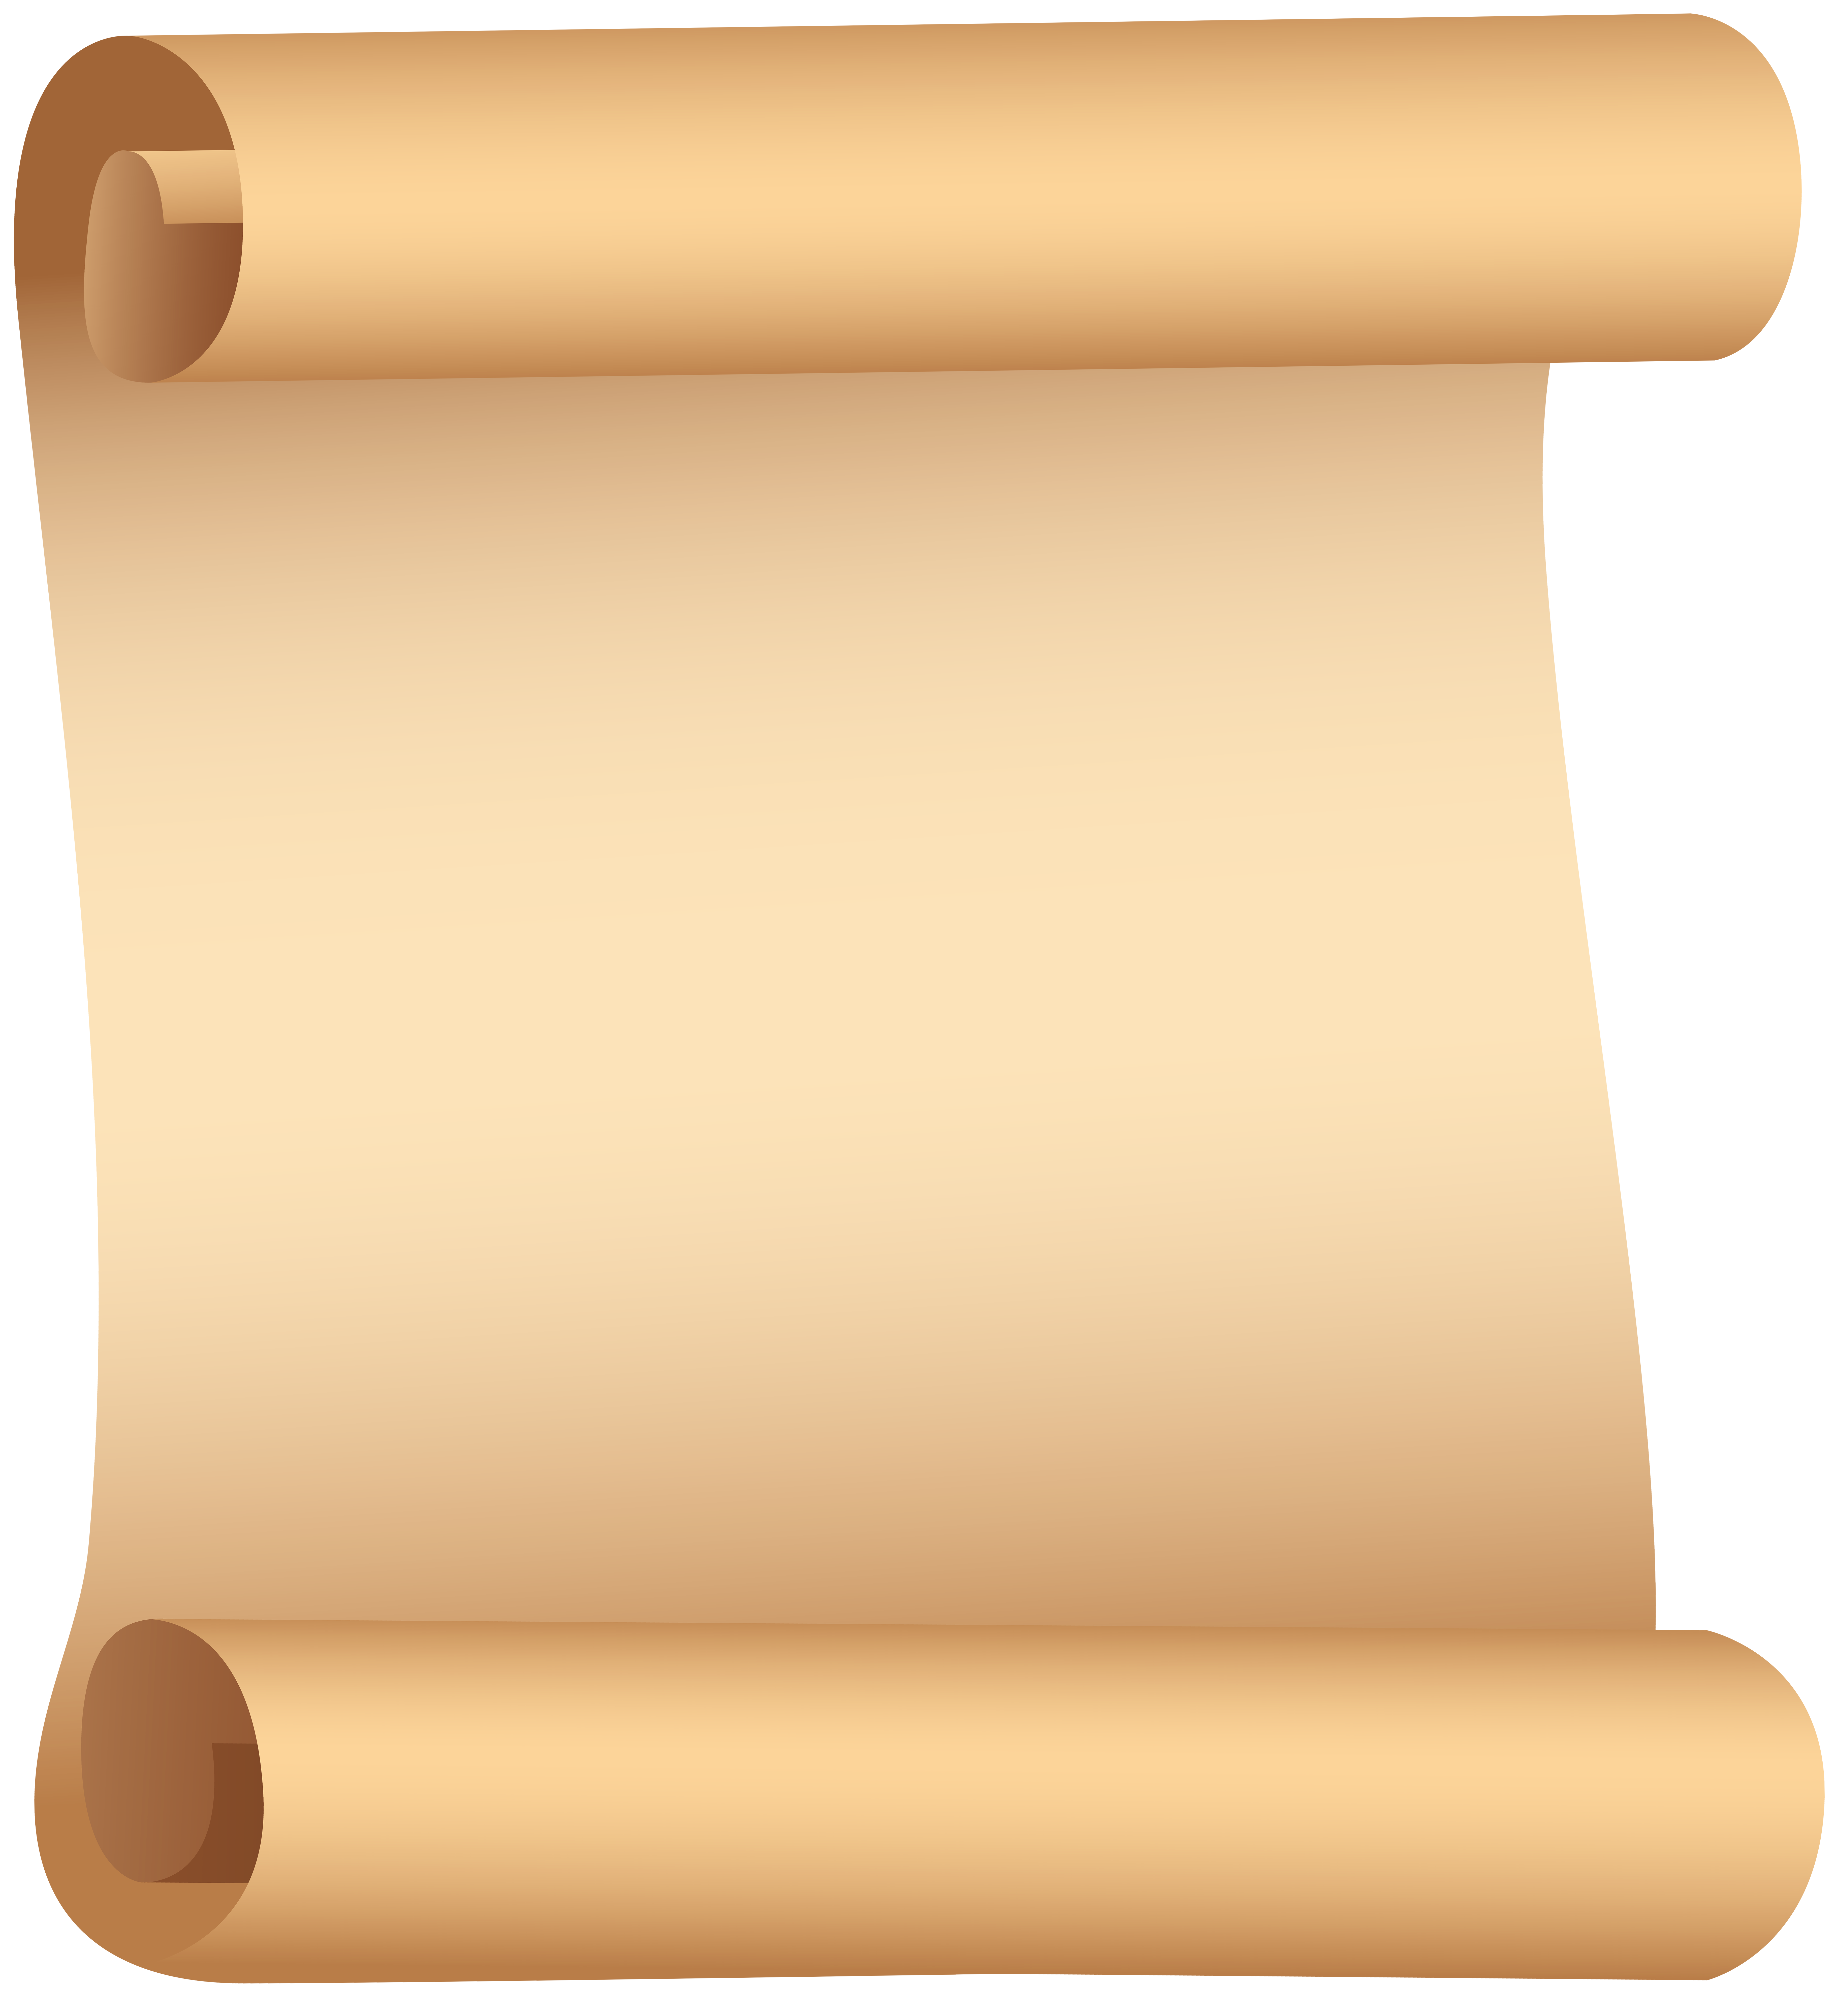 Clipart paper scroll graphic transparent library Paper Scroll PNG Clip Art | Gallery Yopriceville - High-Quality ... graphic transparent library